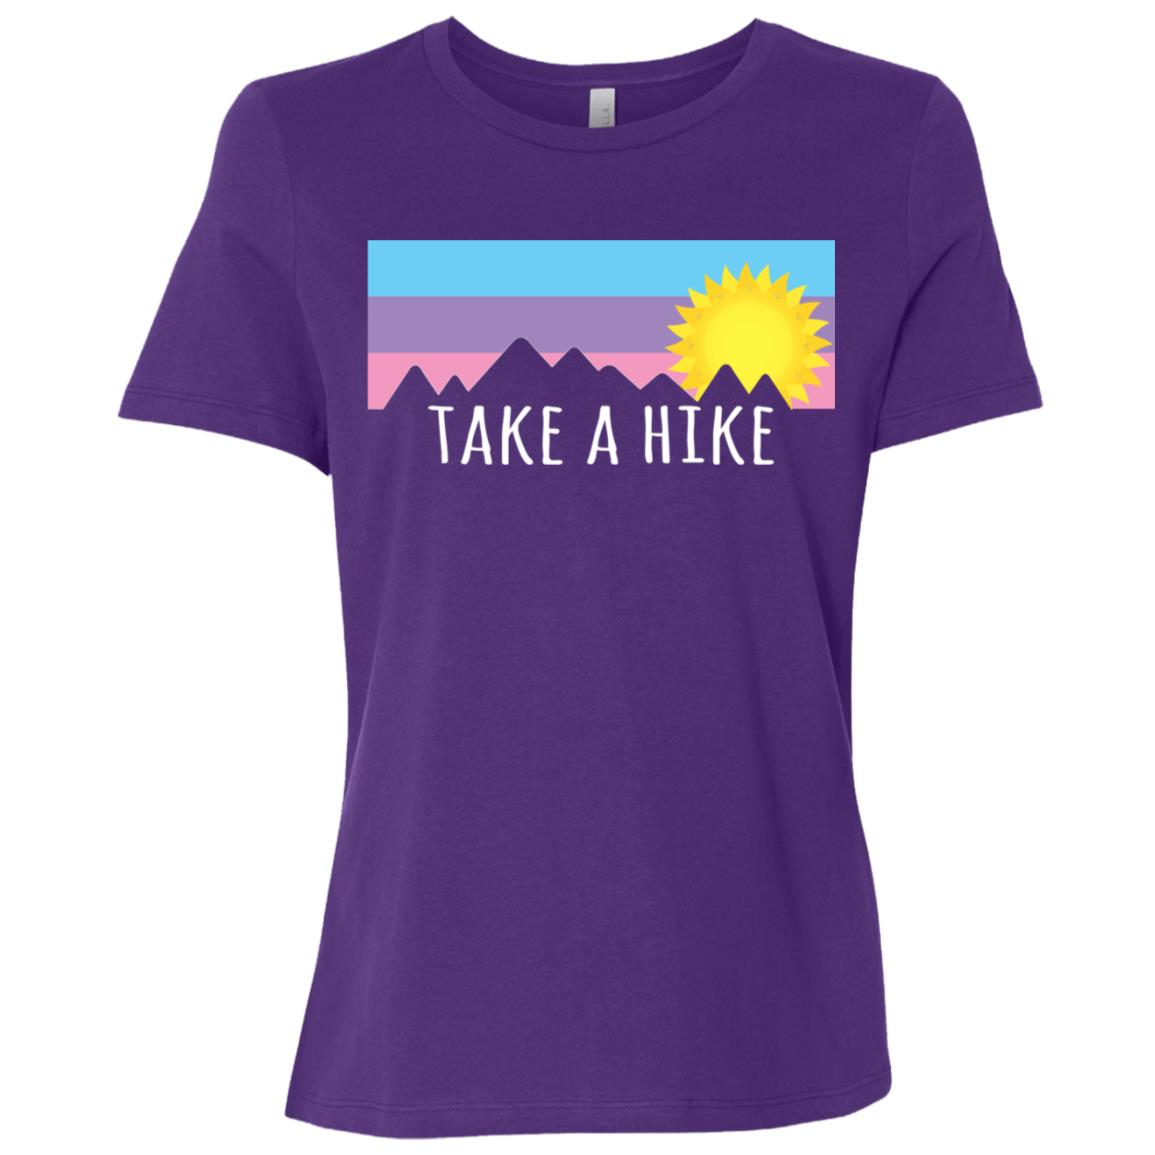 Take a Hike for Hikers and Climbers Women Short Sleeve T-Shirt